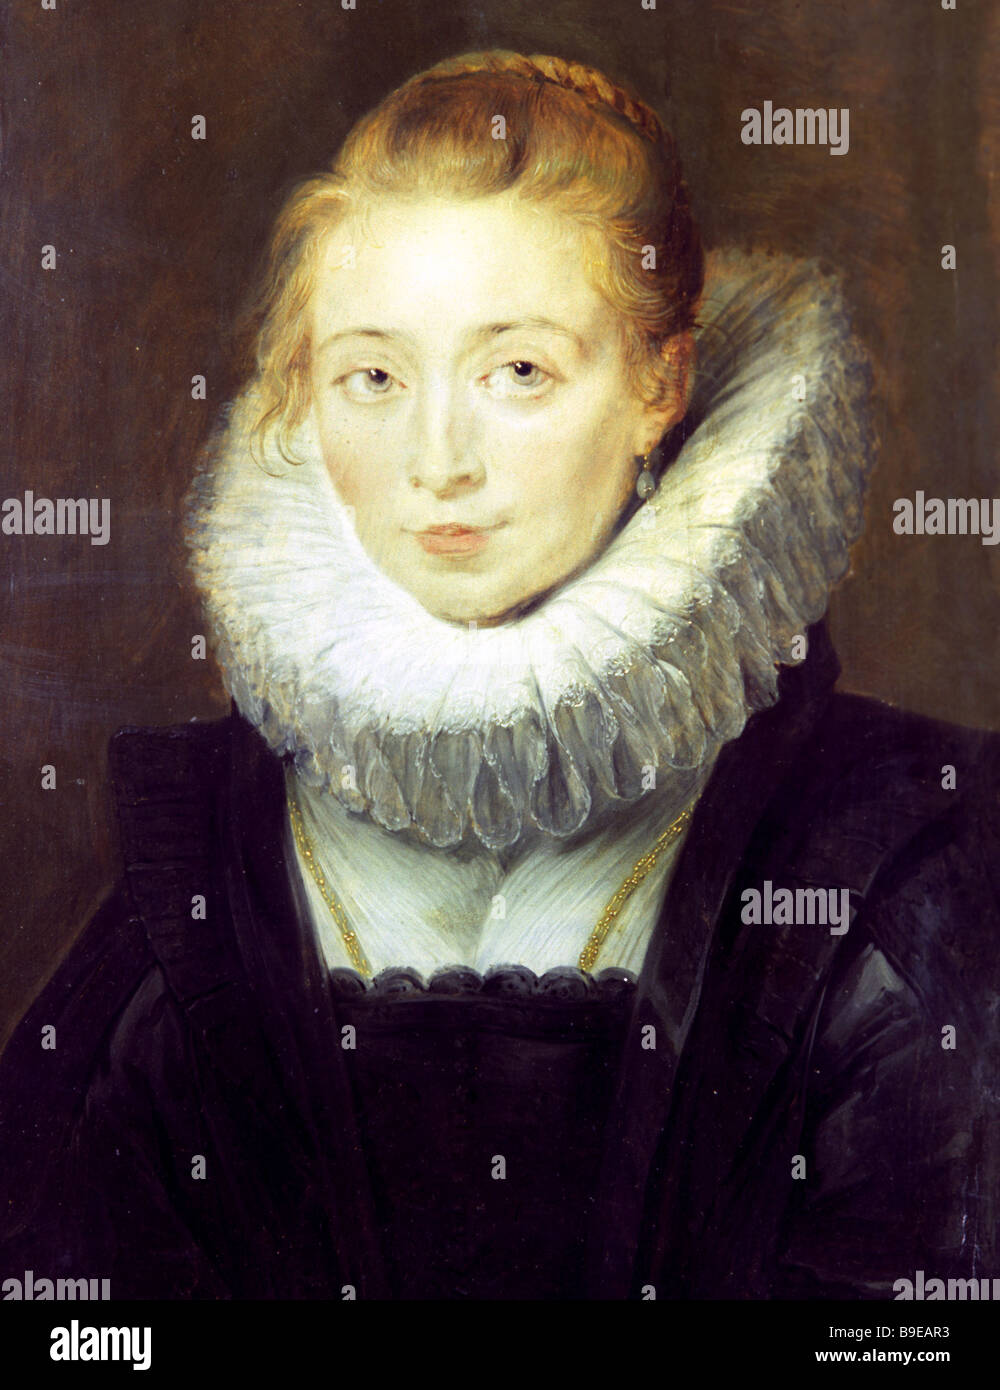 Peter Paul Rubens 1577 1640 Portrait of a Chambermaid of Infanta Isabella C 1625 Oil on wood State Hermitage Museum - Stock Image